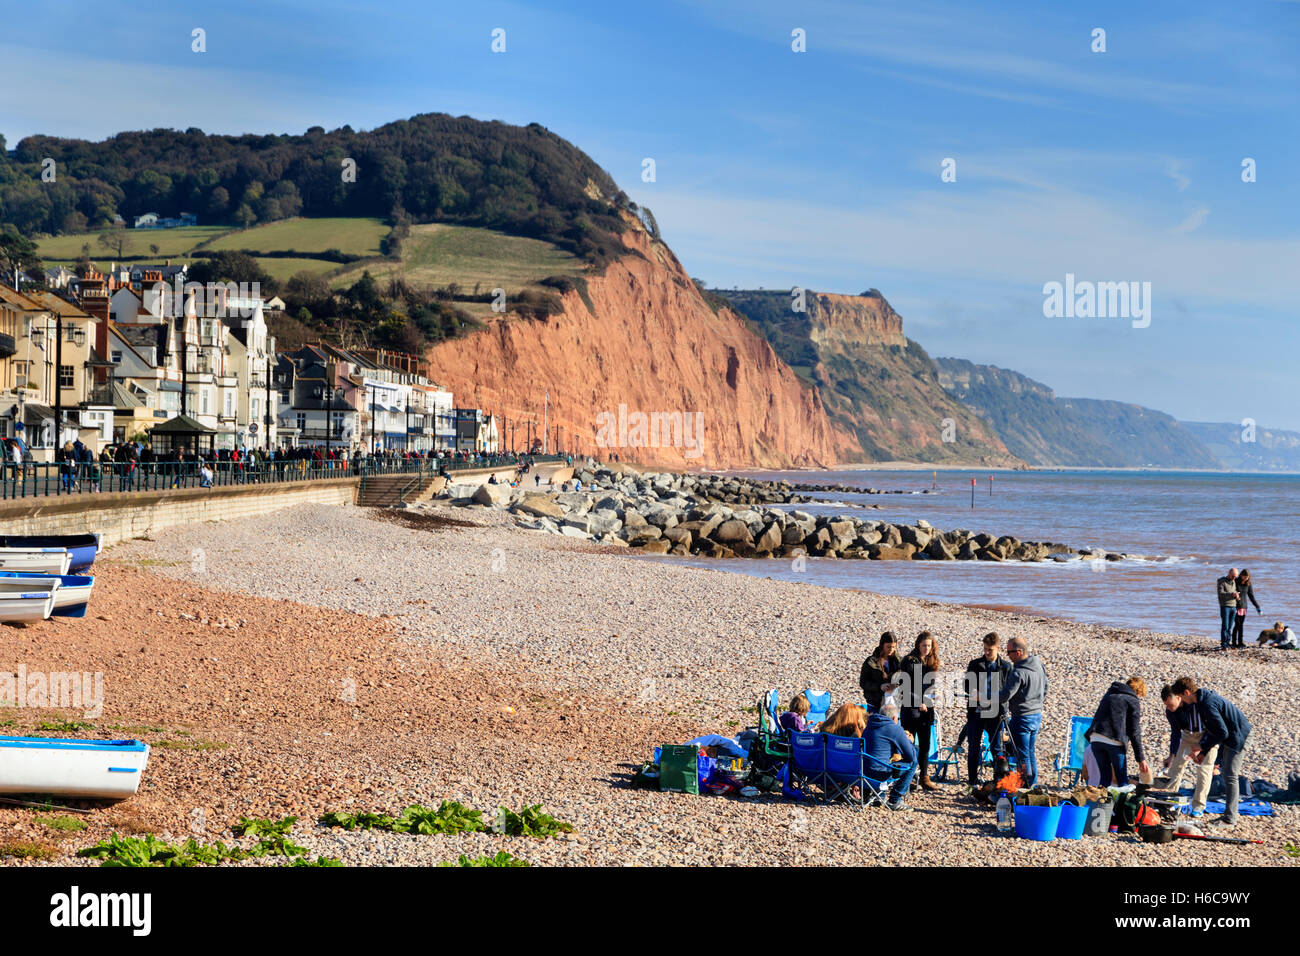 Visitors enjoying late October sun on the beach at Sidmouth, Devon, UK.  Town, esplanade and Jurassic Coast cliffs - Stock Image